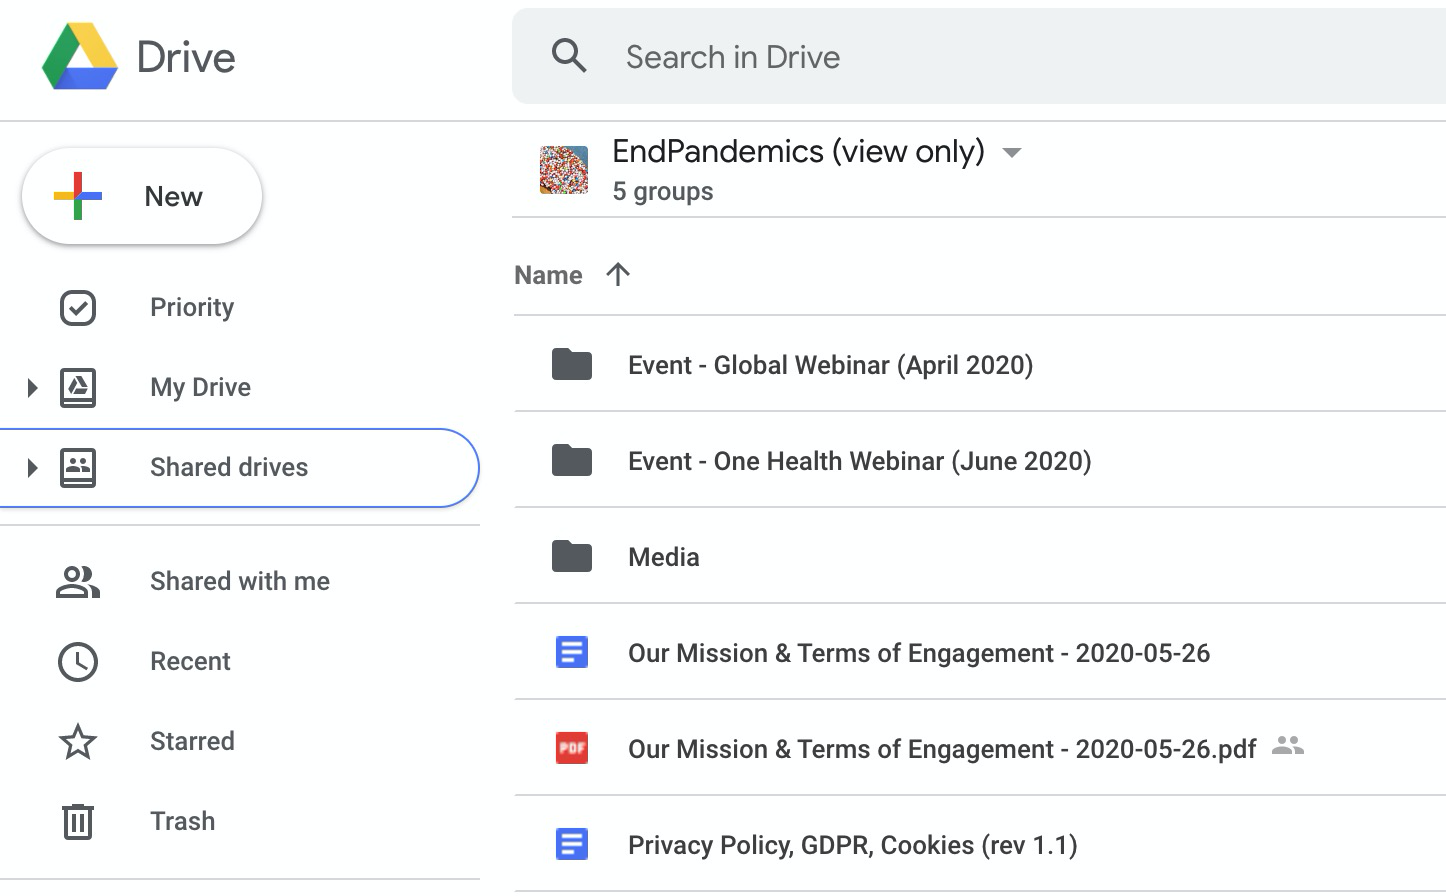 EndPandemics Shared Drive for published assets